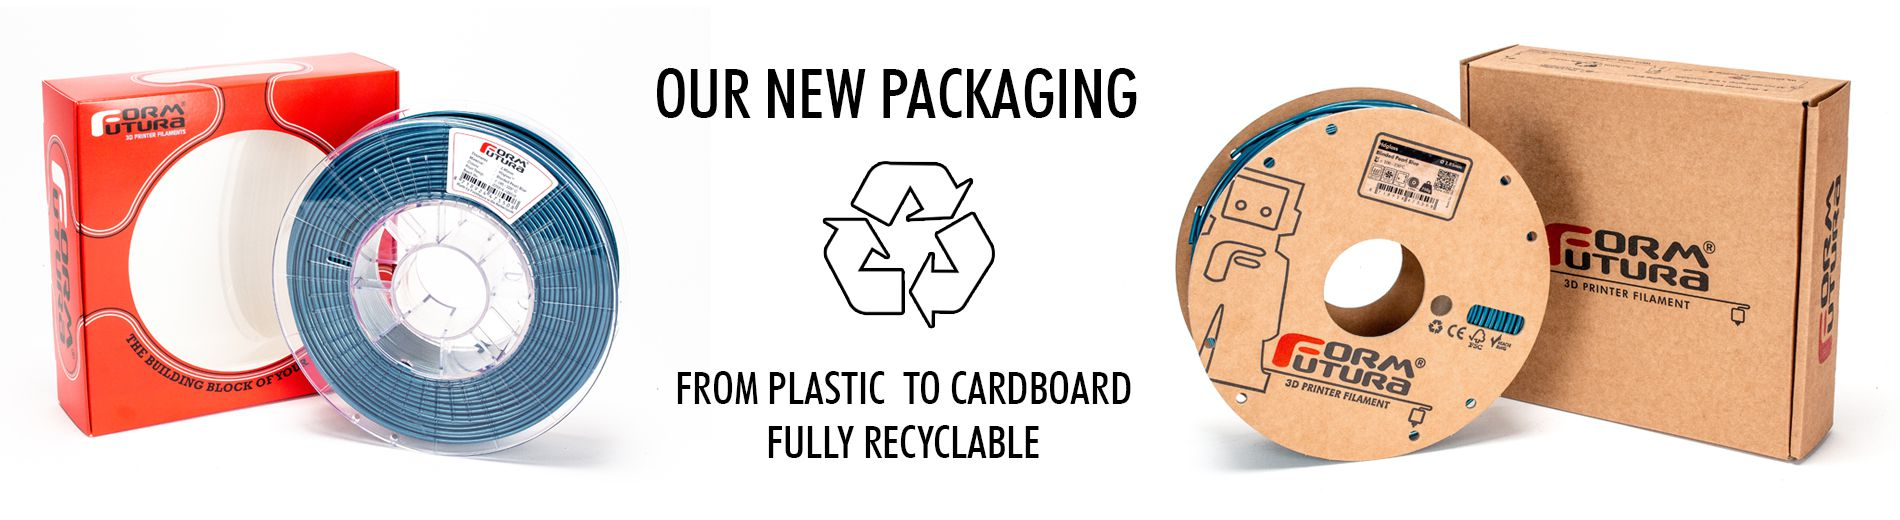 FormFutura moves to complete sustainable packaging